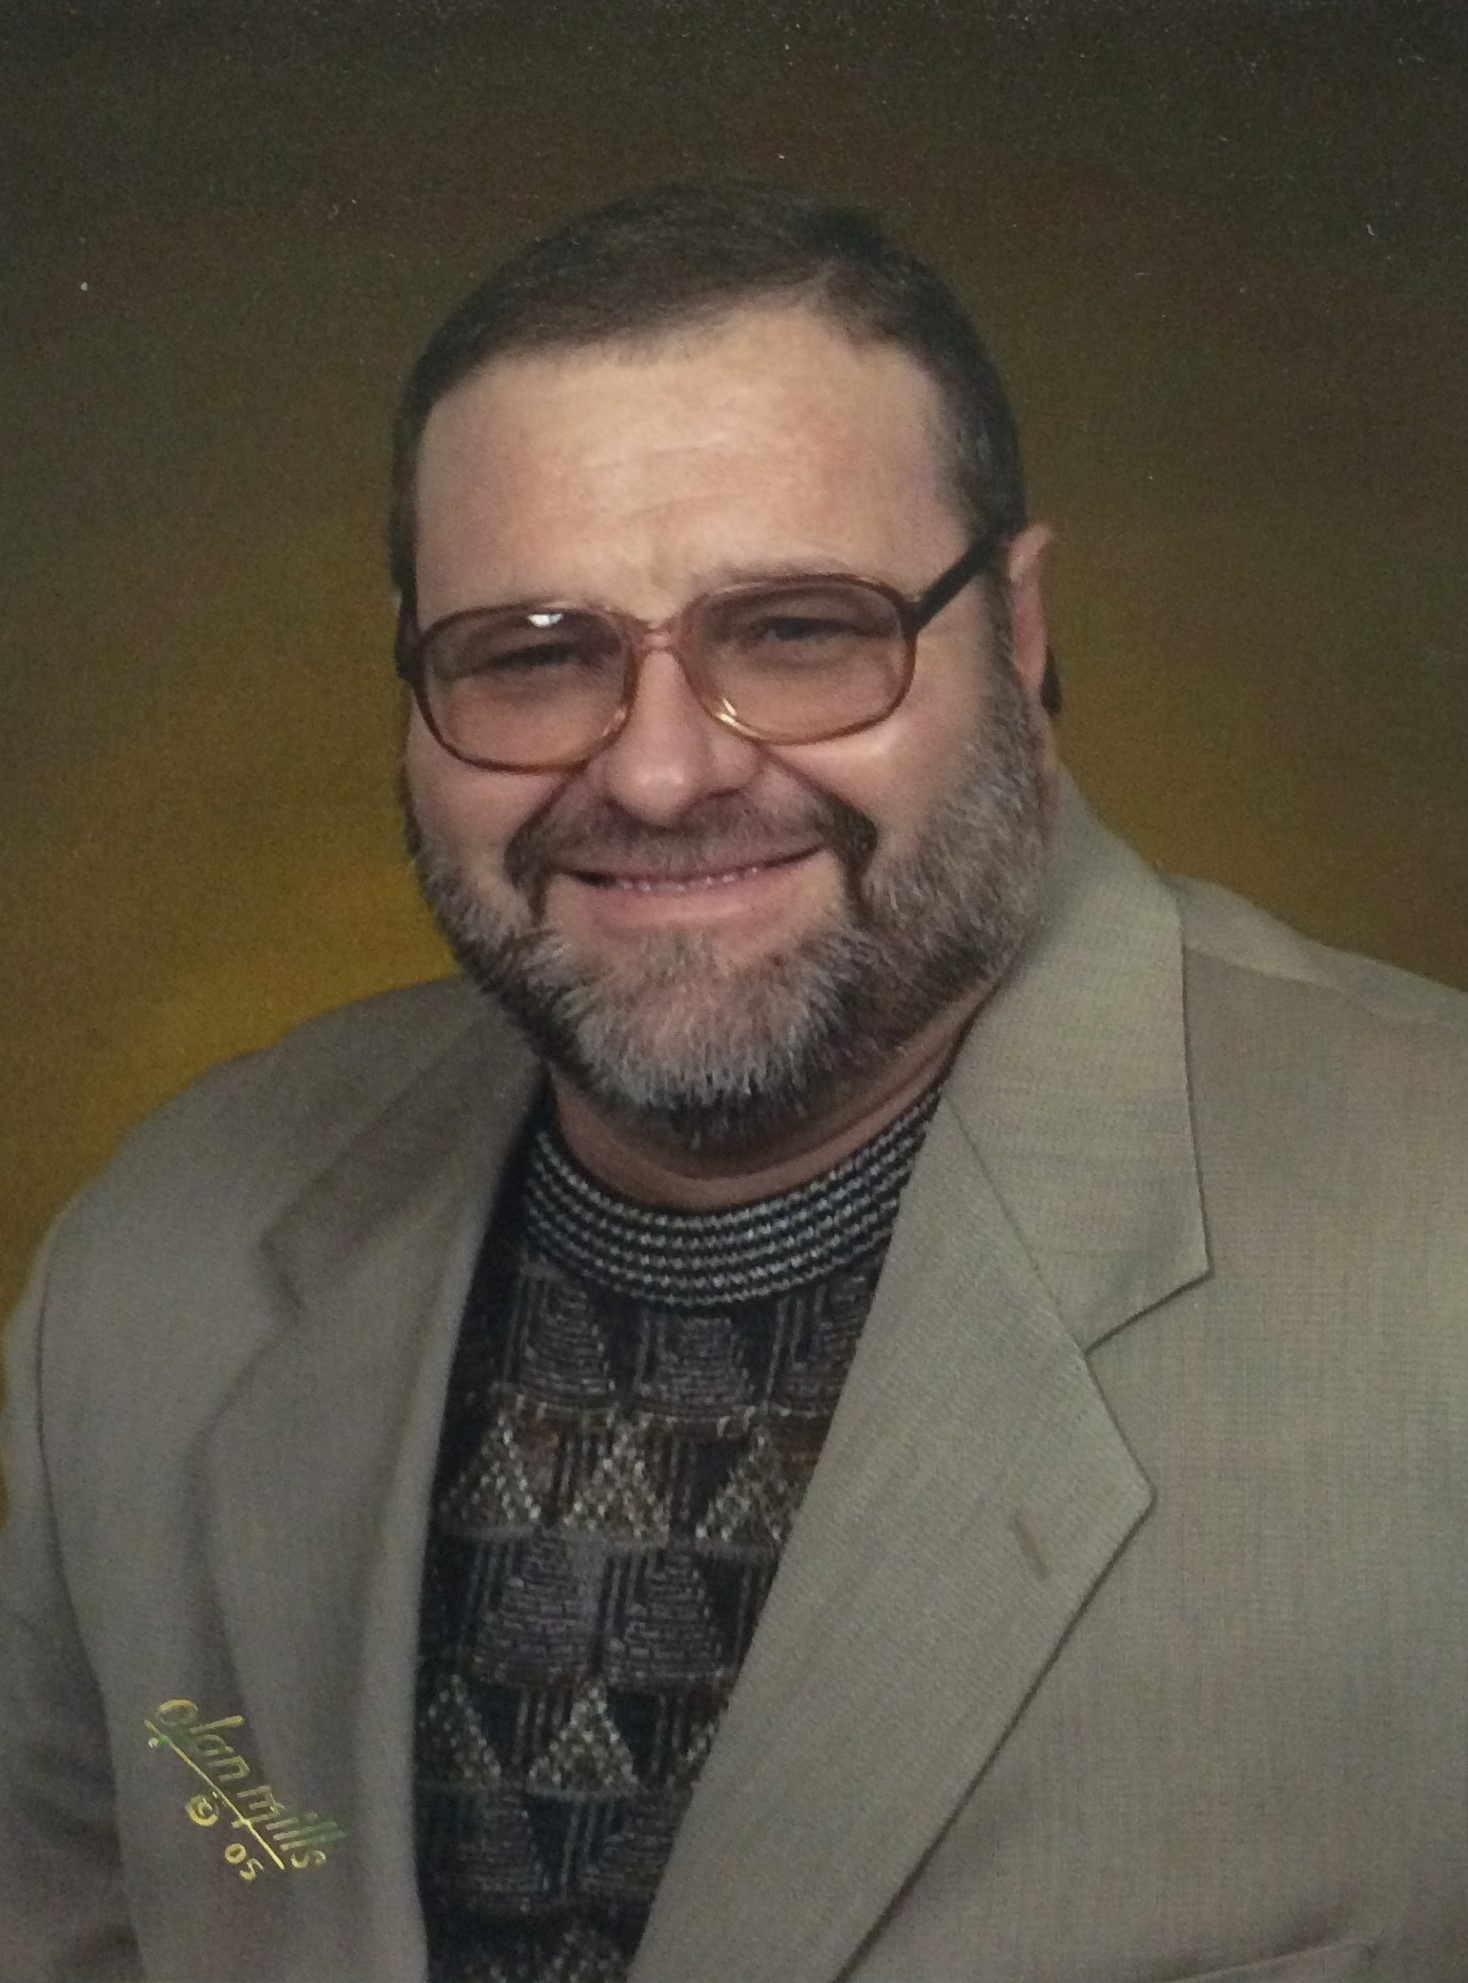 Terry Riggins, 63, of Cannelburg